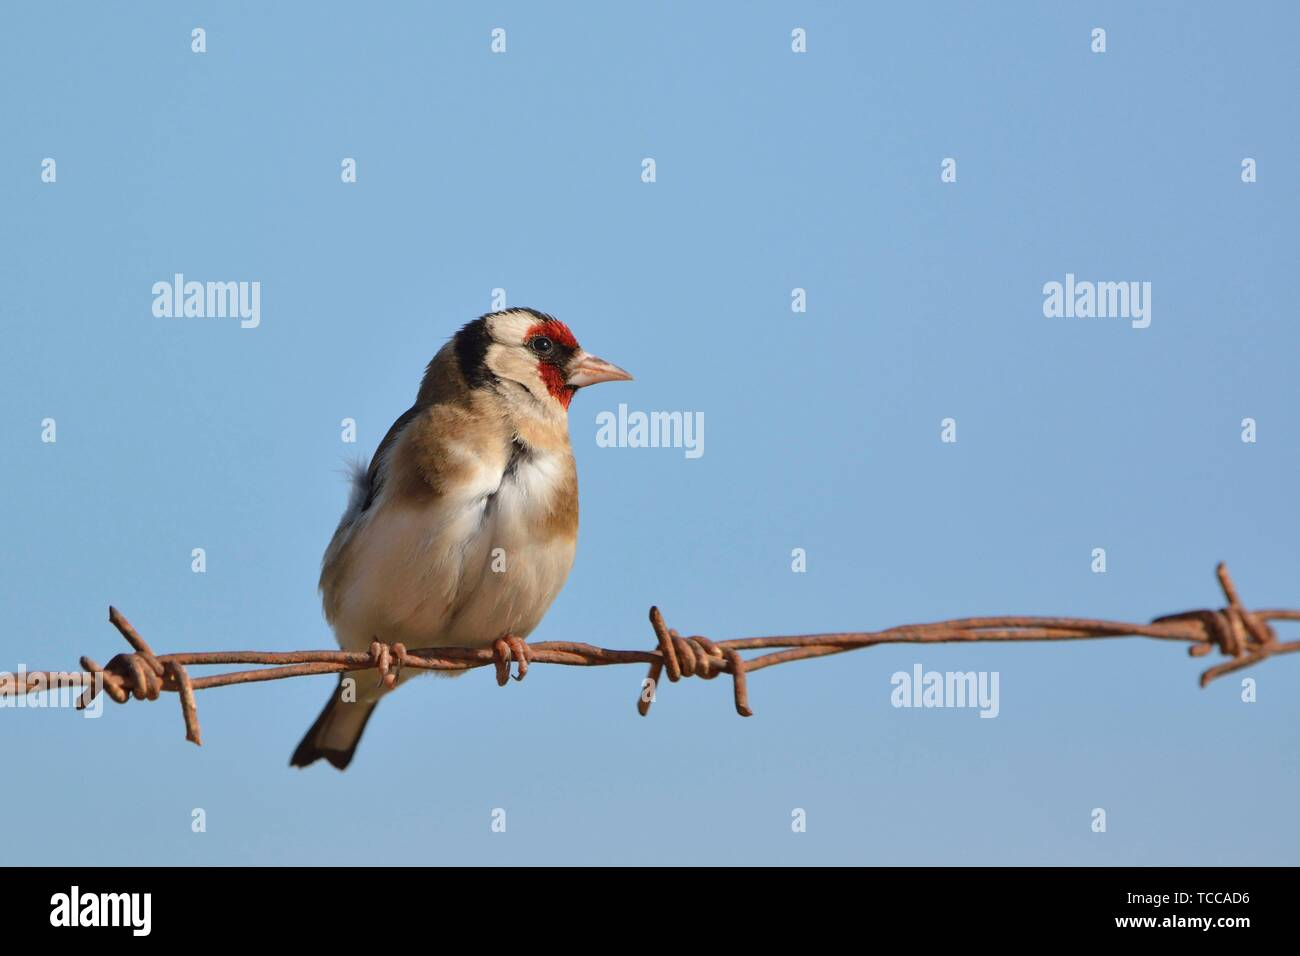 European Goldfinch (Carduelis carduelis), Greece - Stock Image